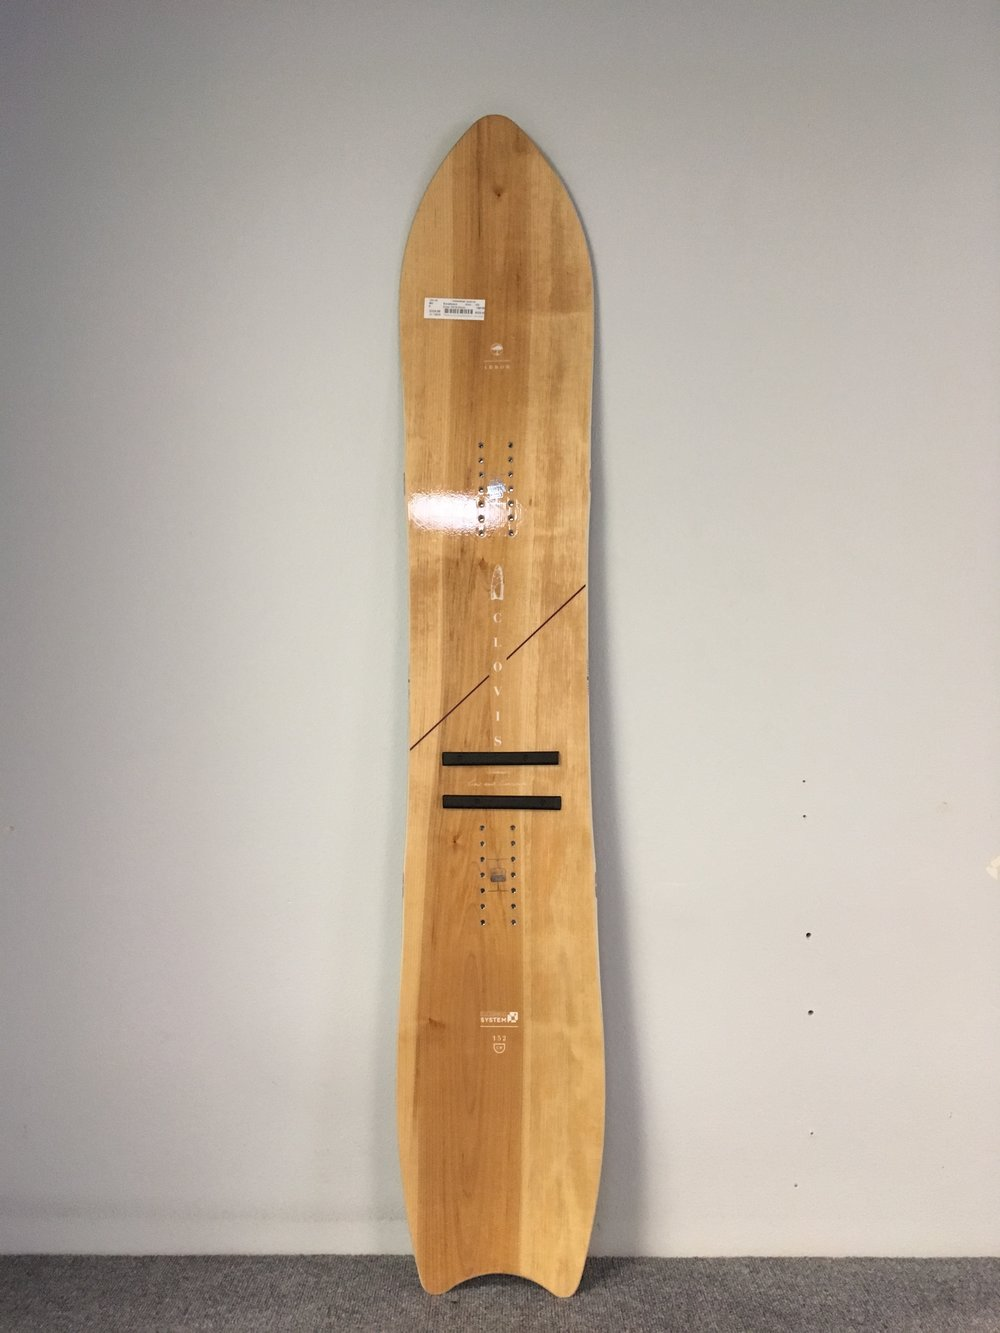 Charge the steeps with this years Arbor Women's Clovis! The board is mint condition and a 152cm. Retail for the Clovis is listed at $450 but we can get you riding for $329.